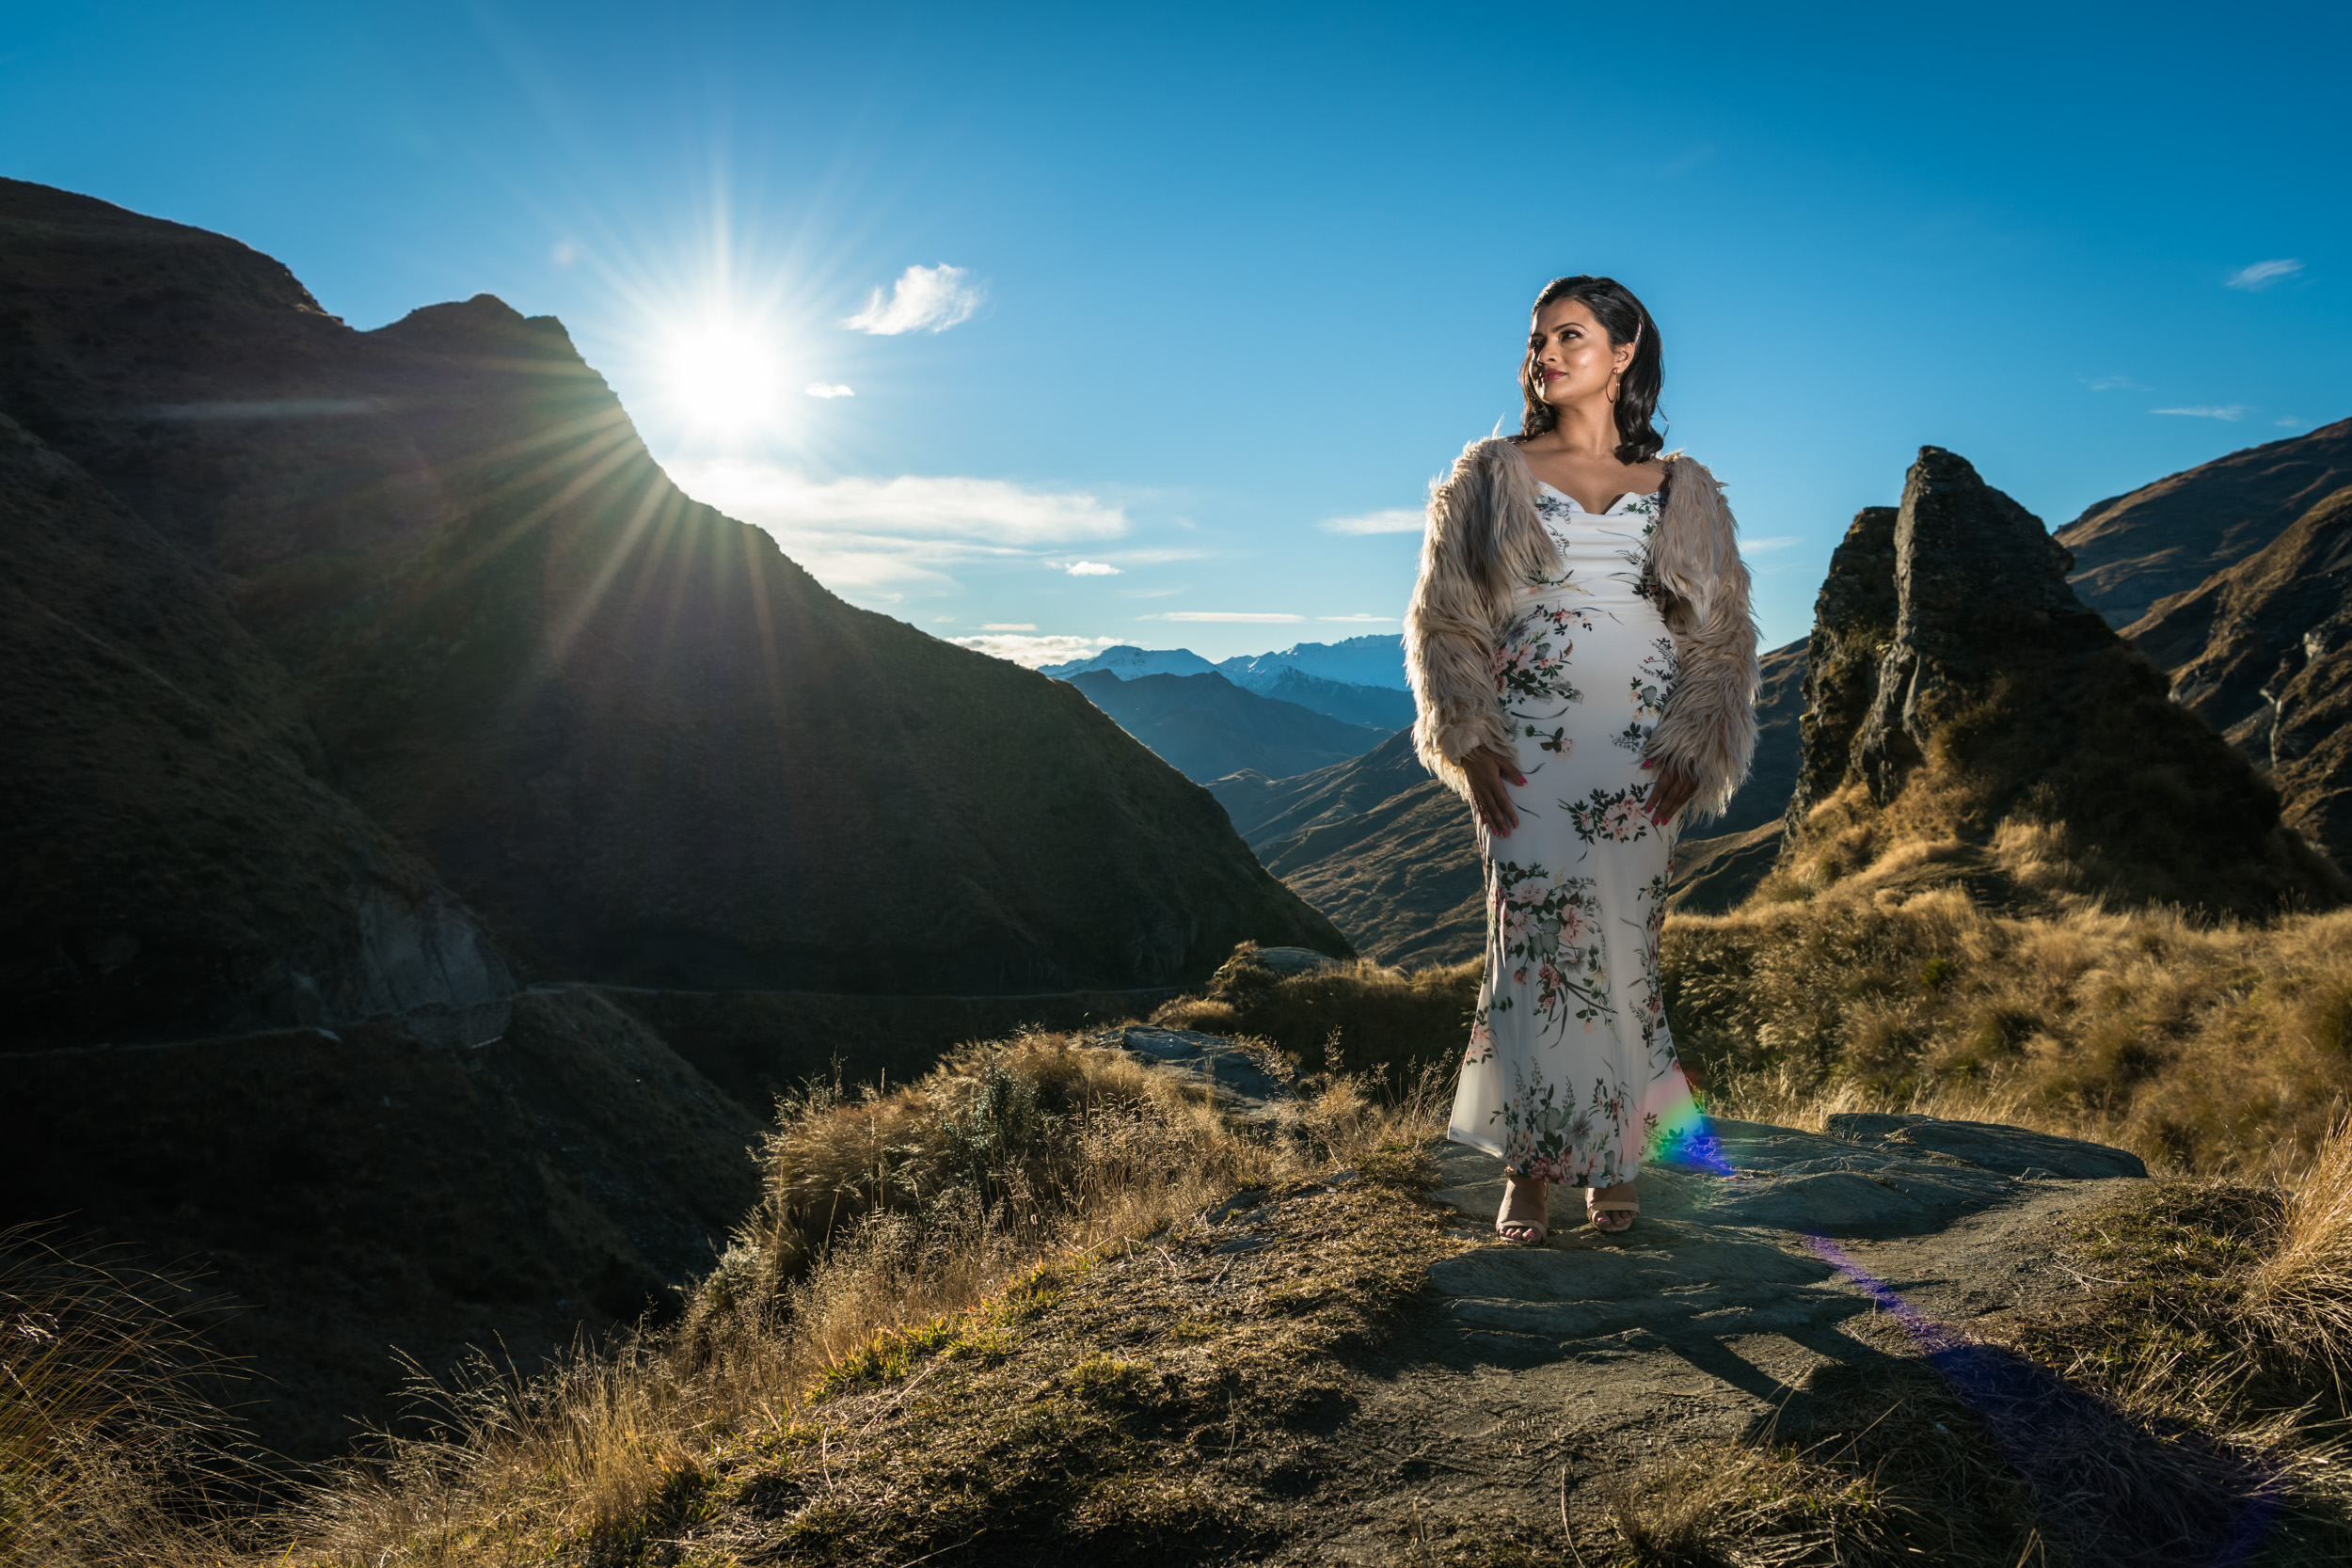 Professional Portrait Photography - Backcountry locations Queenstown NZ